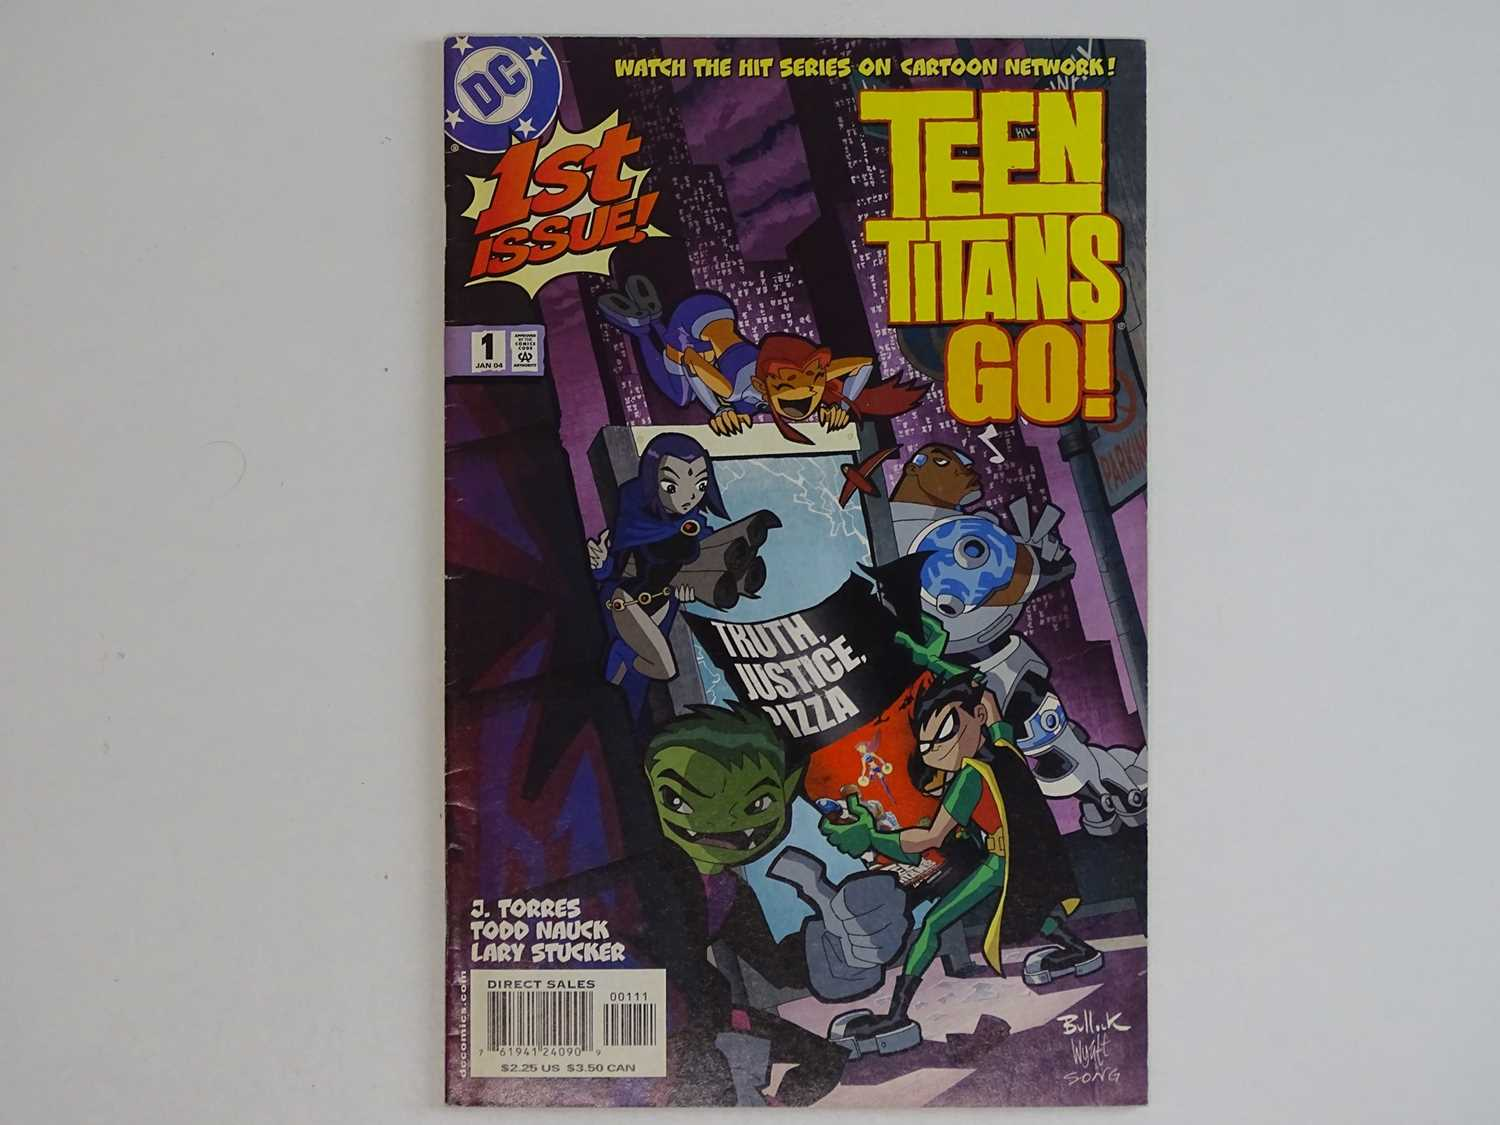 TEEN TITANS GO #1 - (2004 - DC) - First Printing - RARE - Comic book series based on the hit